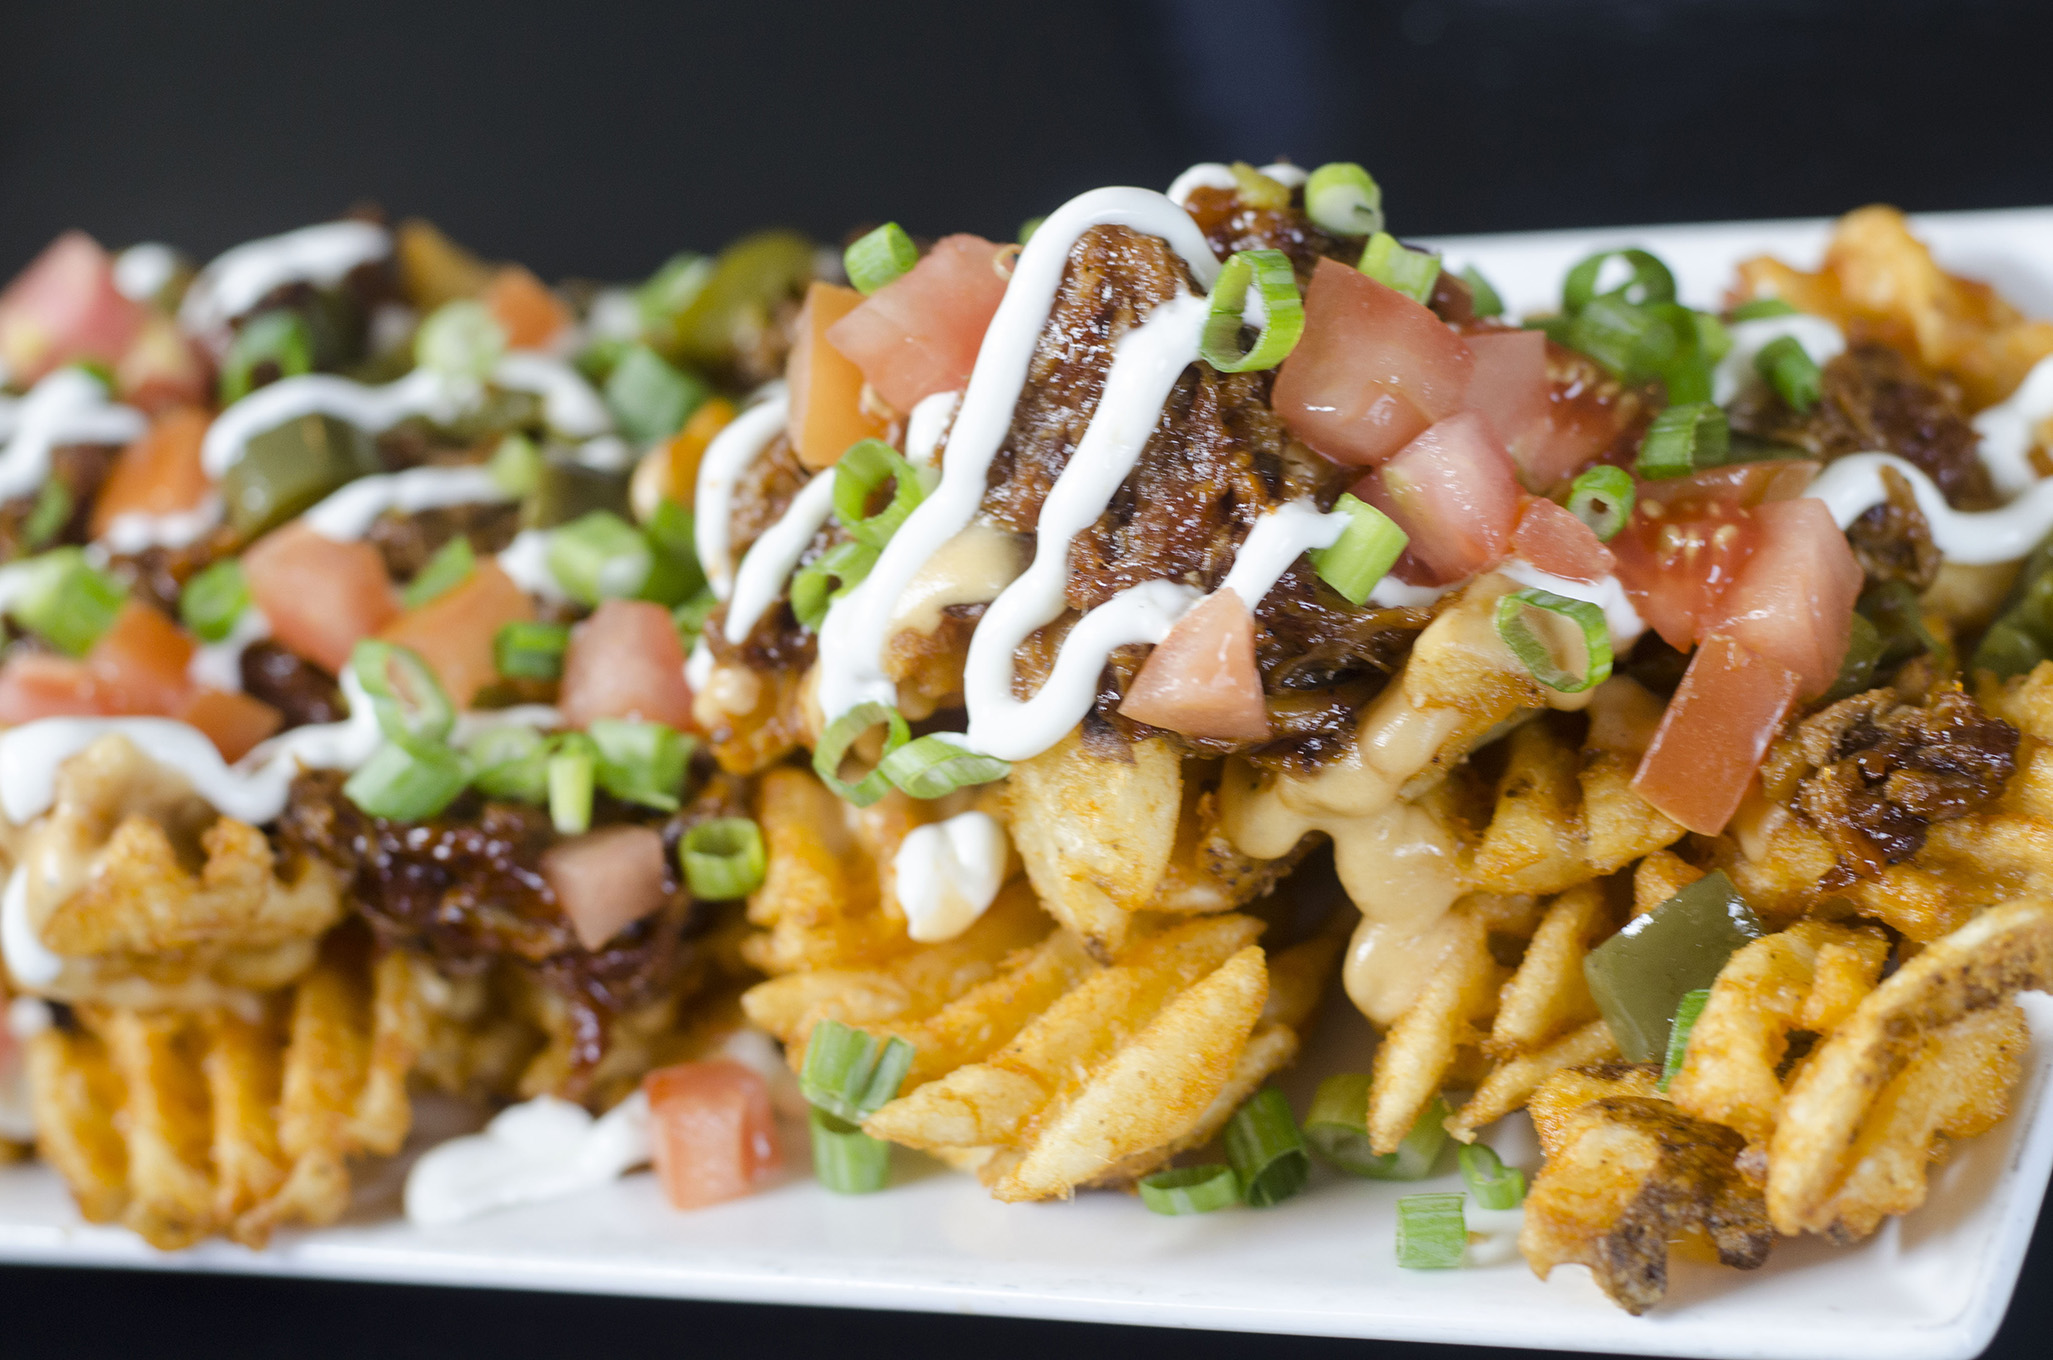 Waffle fry nachos from Jack's in Kingsville, Ontario.